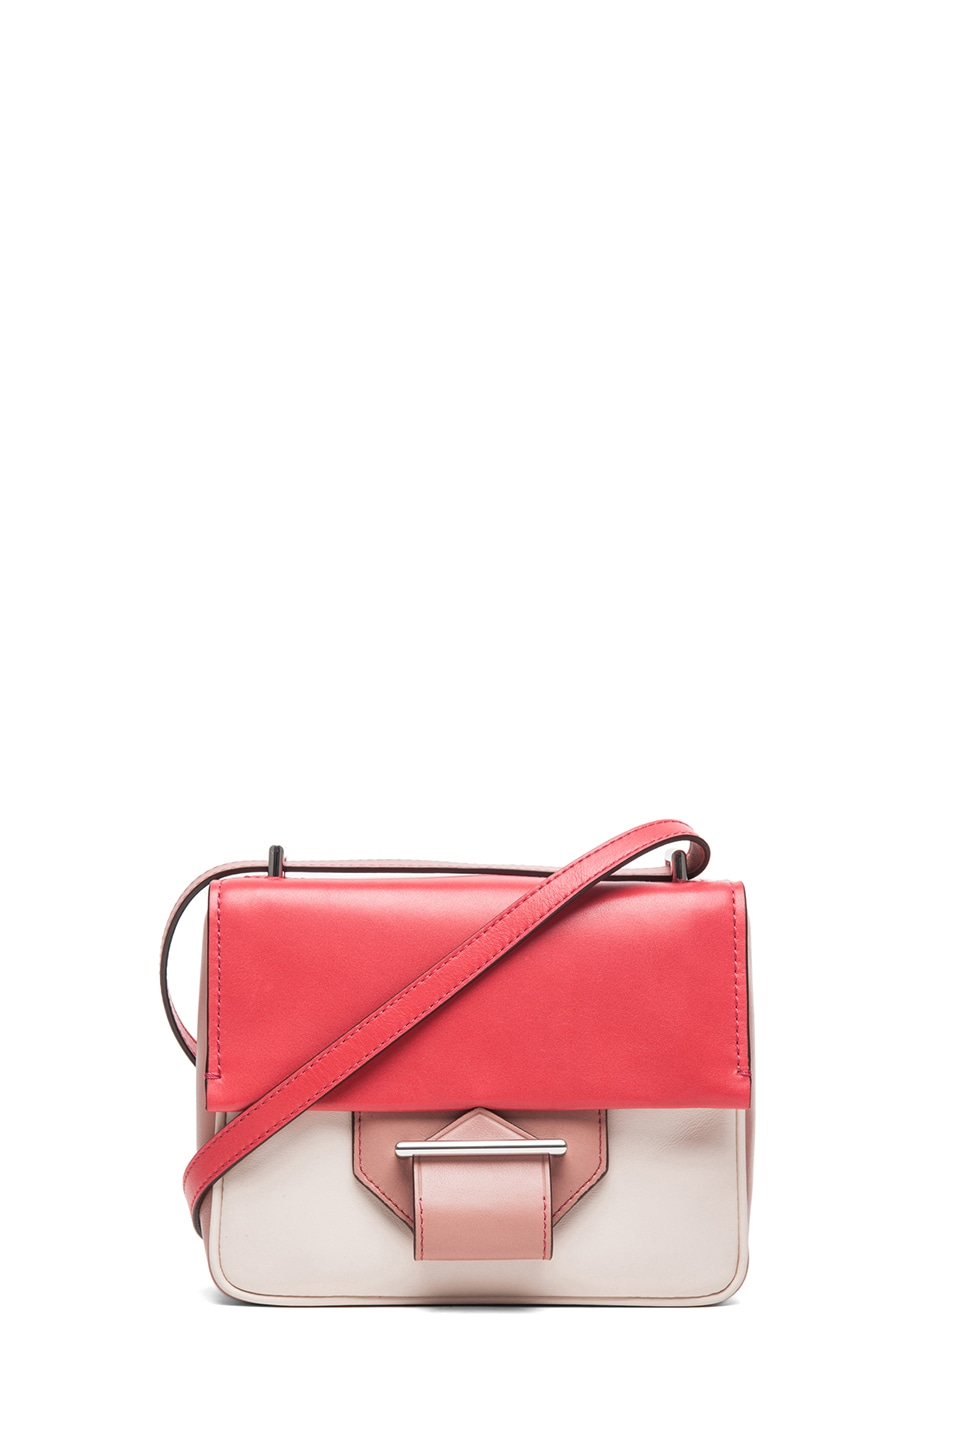 Image 1 of Reed Krakoff Standard Mini Shoulder Bag in Fresco Multi